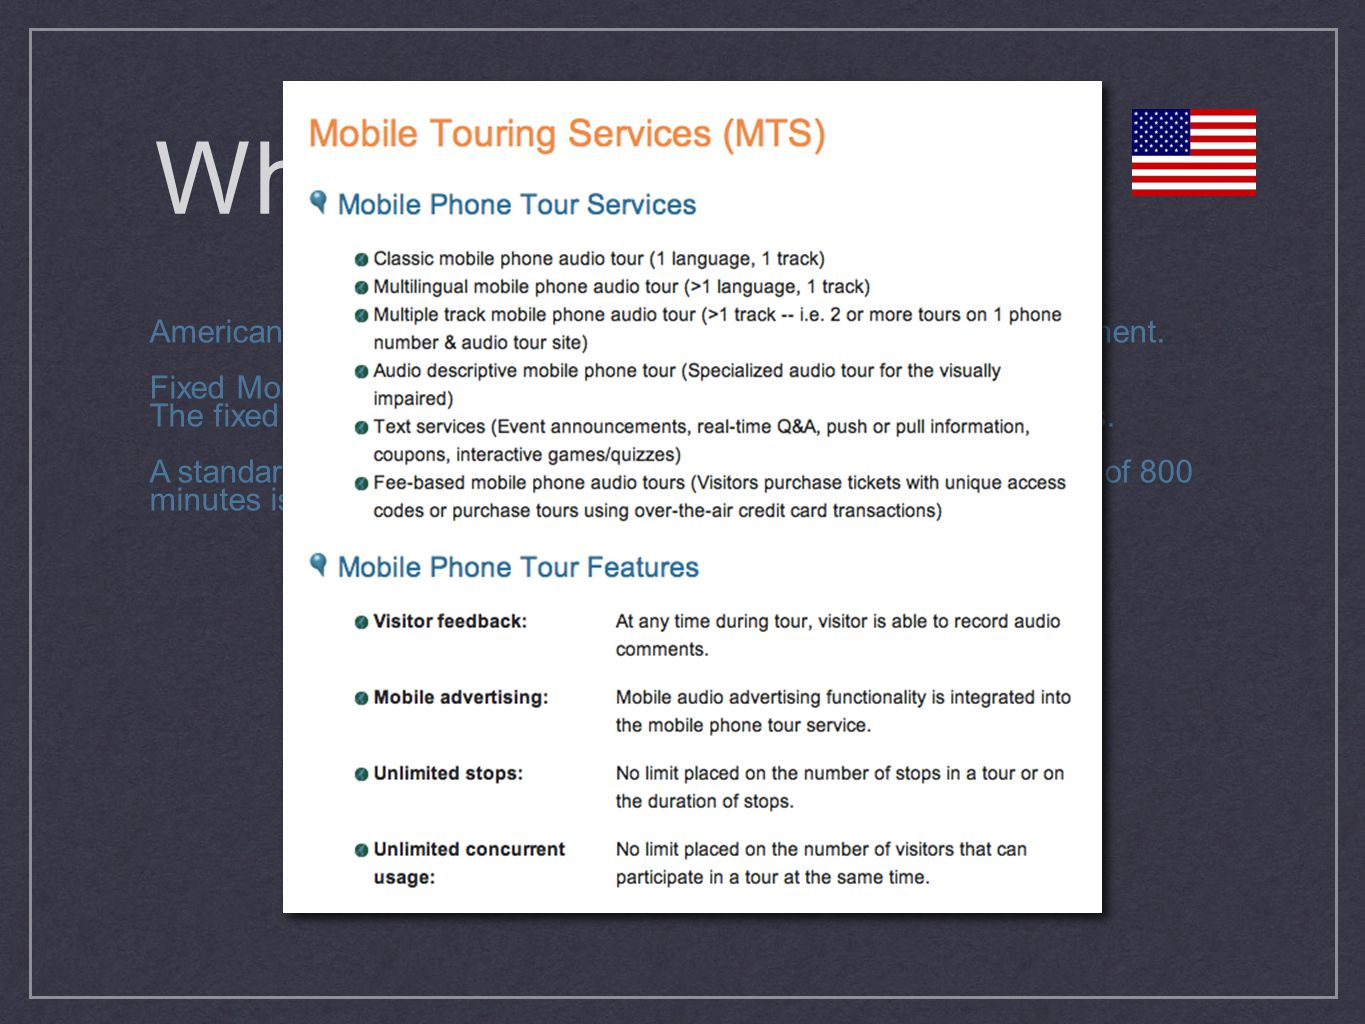 Who? American company providing mobile guide technique and management. Fixed Monthly Hosting Plan The fixed monthly hosting plan starts at $50/month f